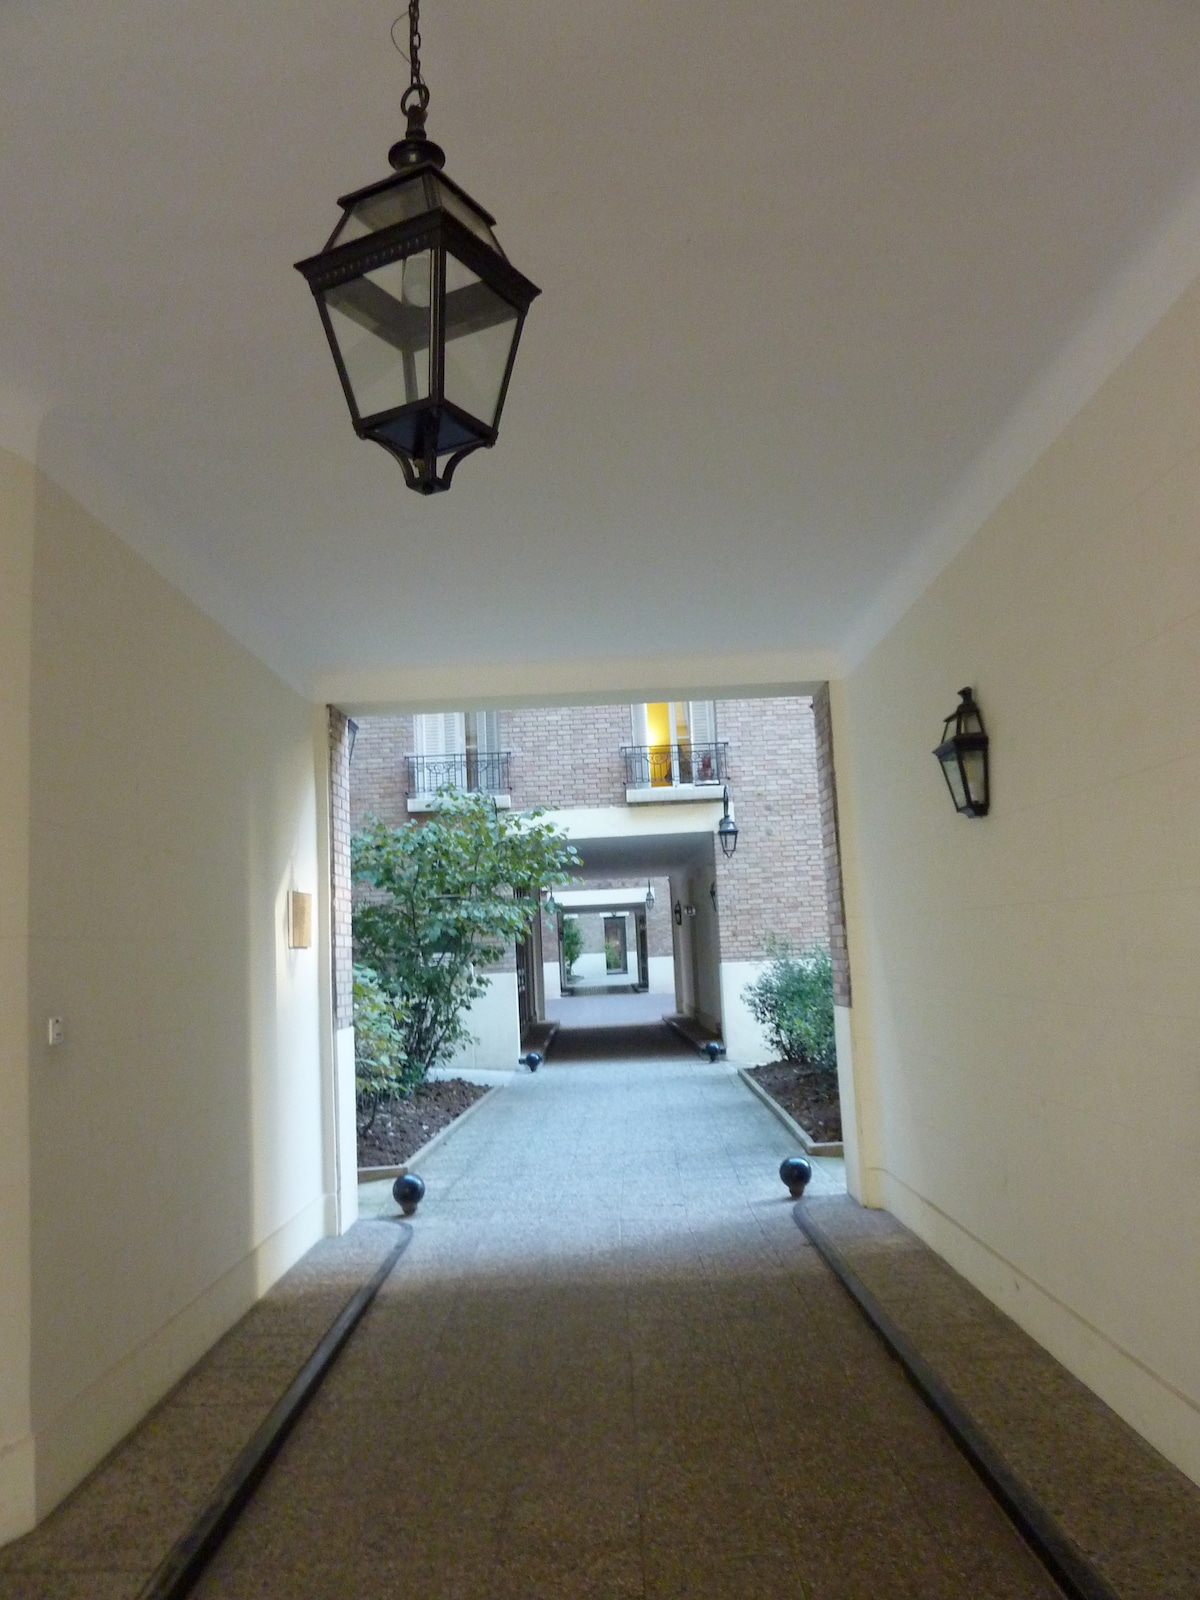 The entrance porch with a concierge on the right and access code during the night !